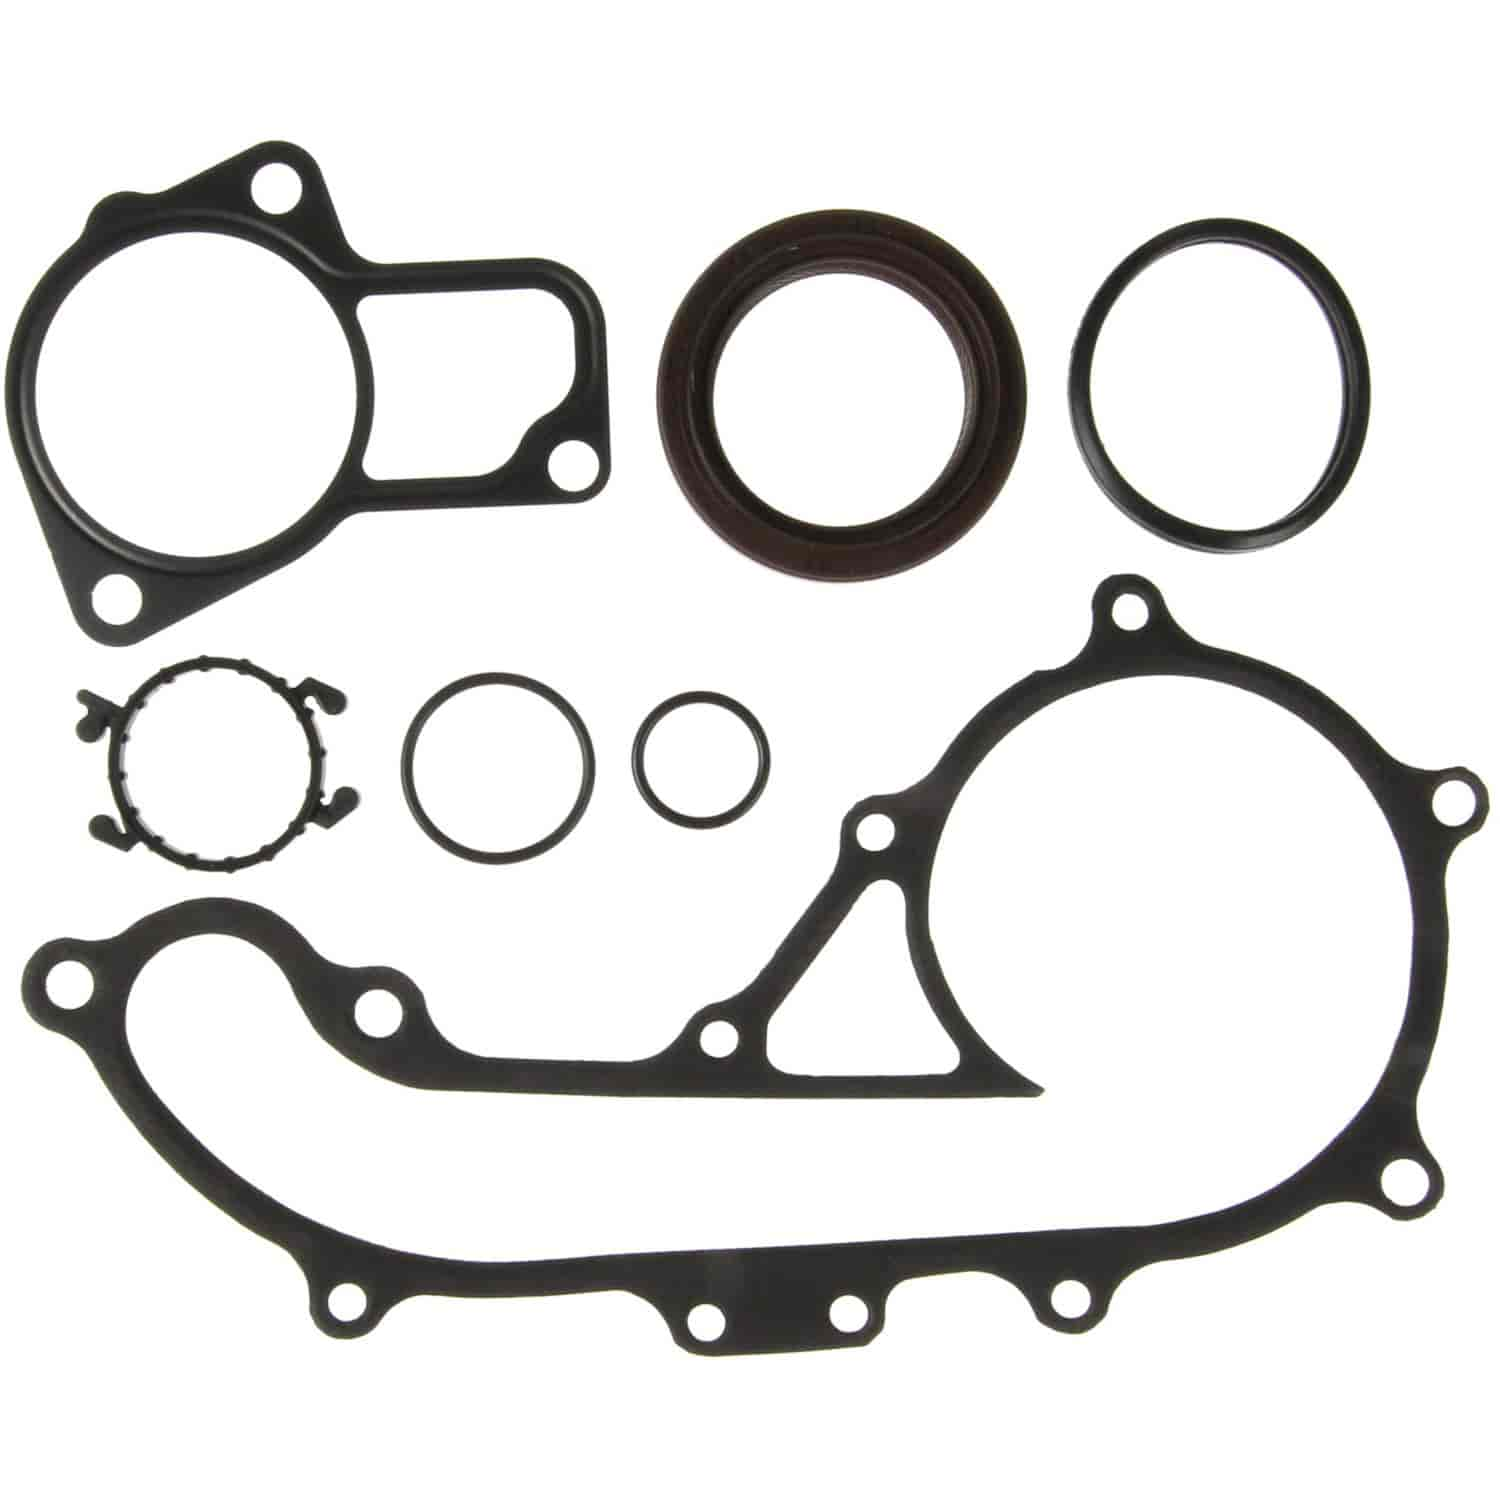 Clevite Mahle Jv Timing Cover Gasket Set Toyota